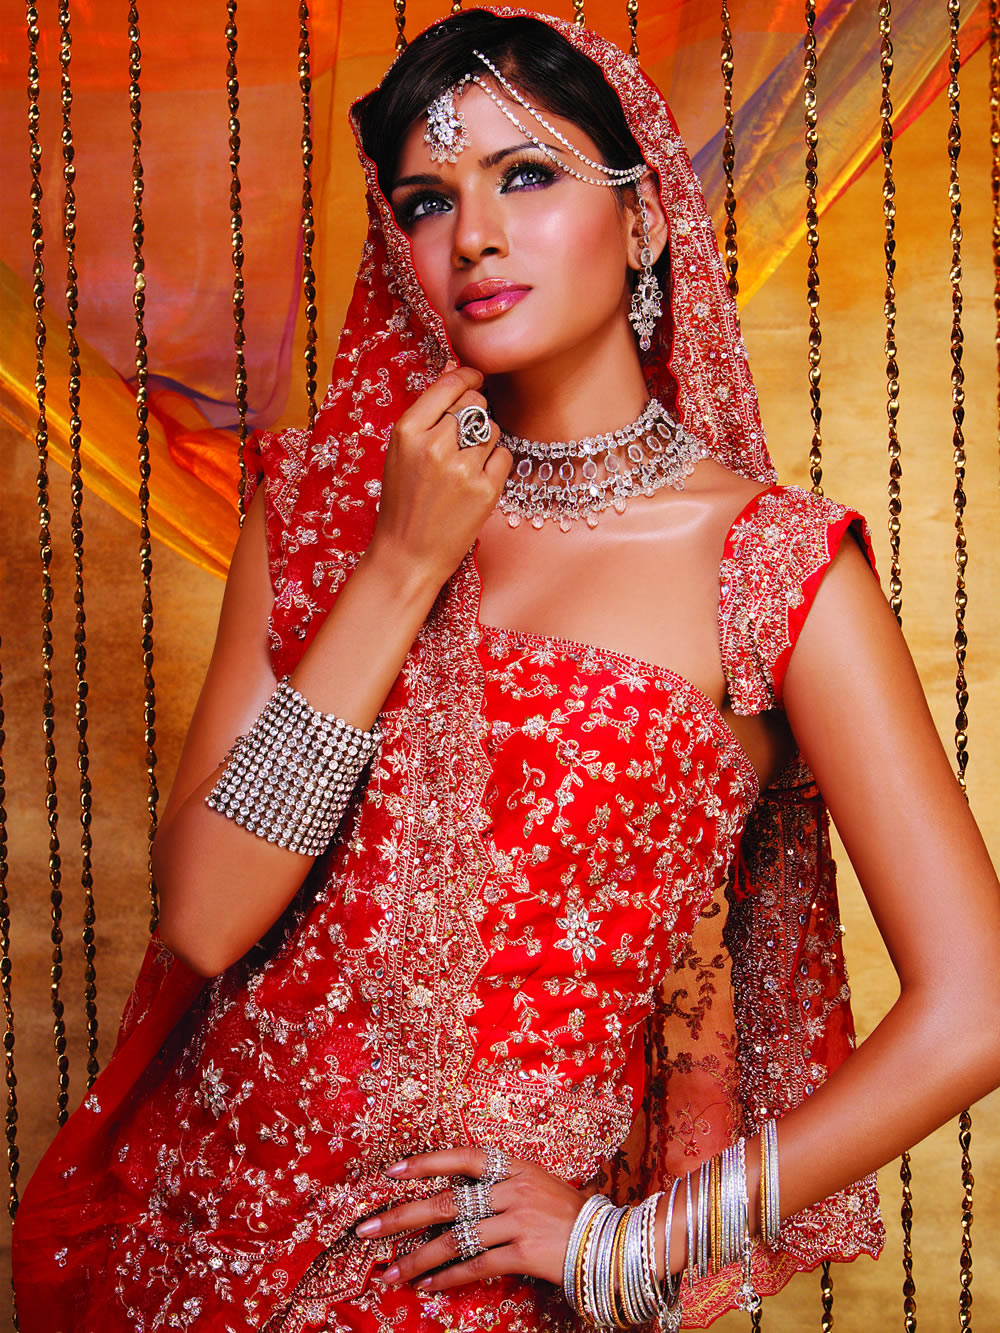 Wallpapers images picpile best indian bridal wedding for Best indian wedding dresses